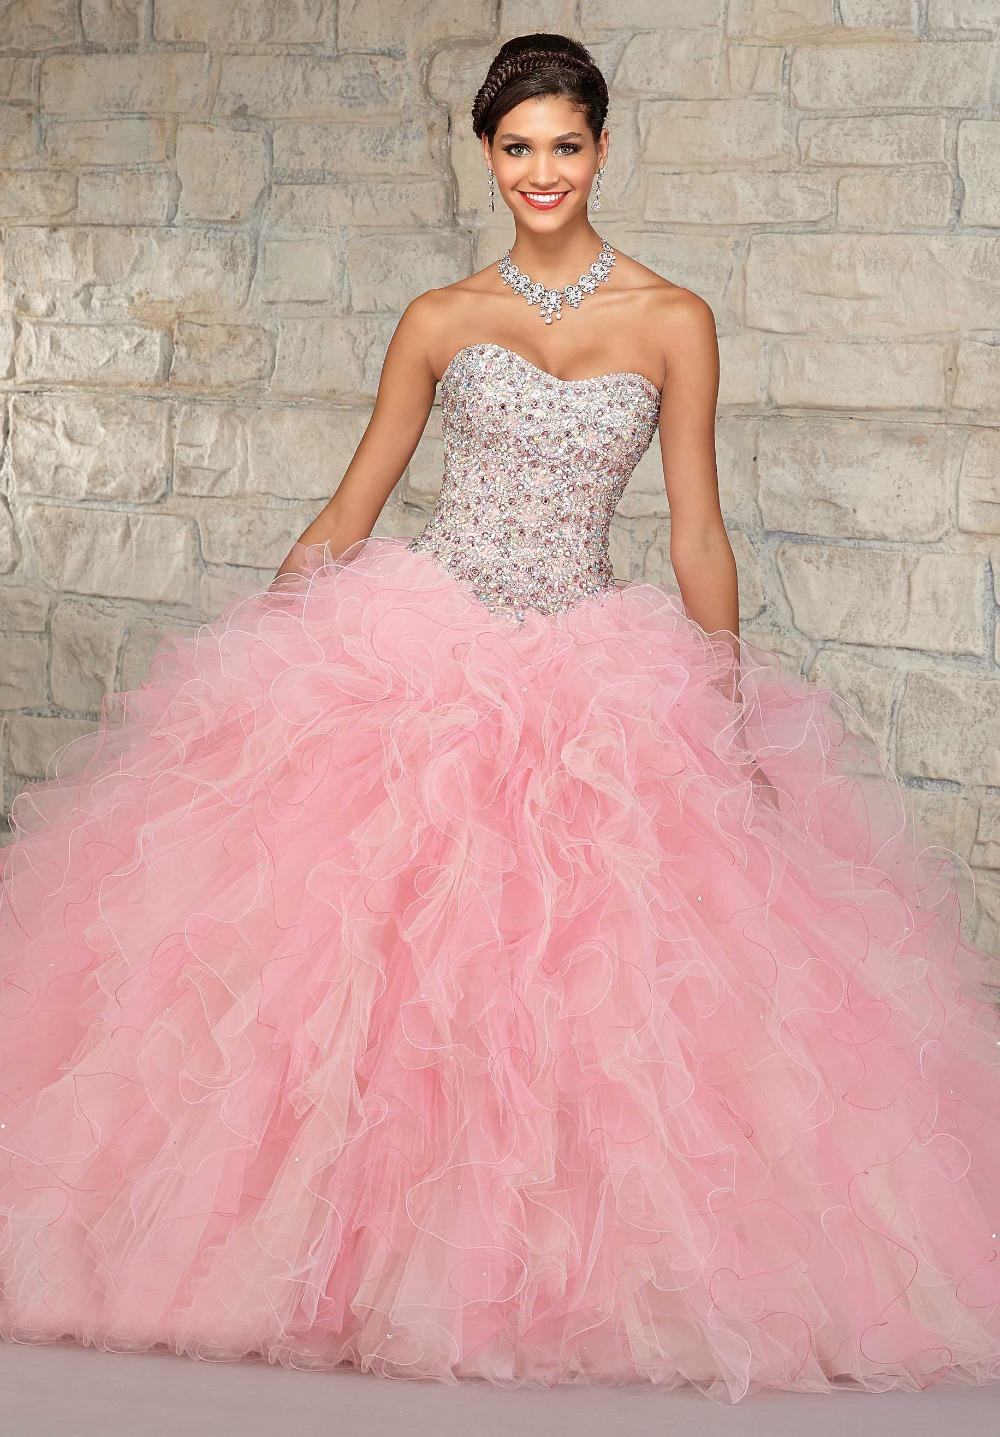 To acquire Dresses quinceanera puffy pink picture trends